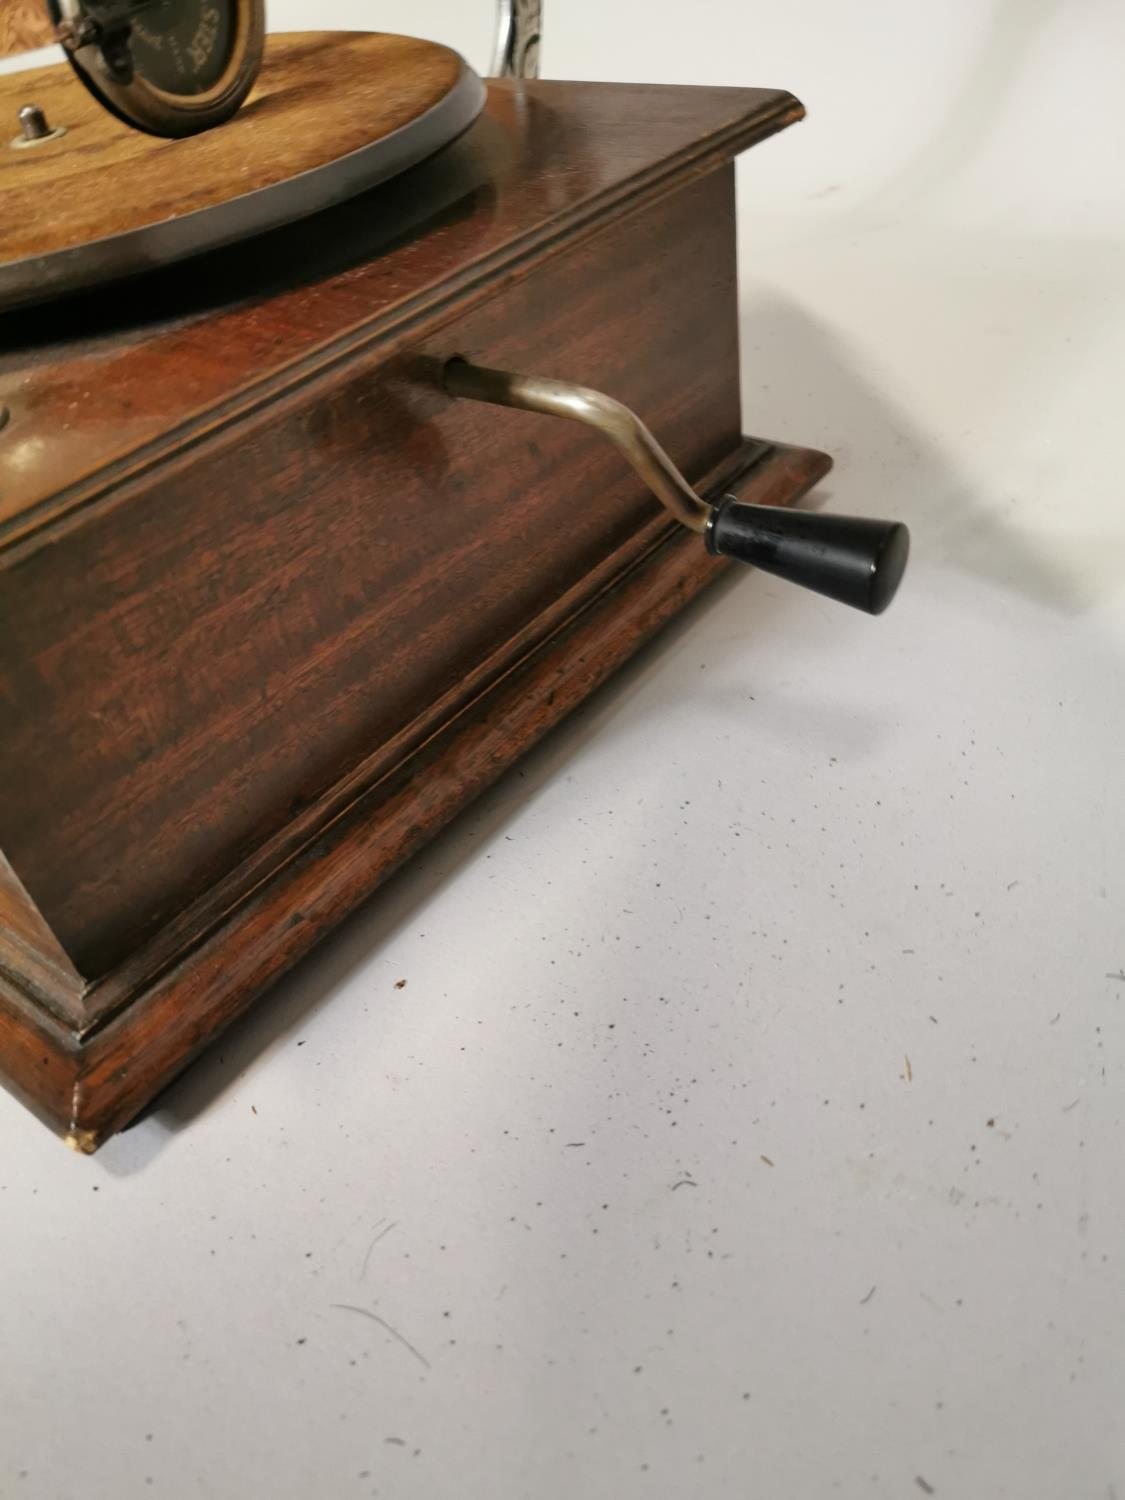 Victory gramophone in oak case with brass horn - Image 6 of 7